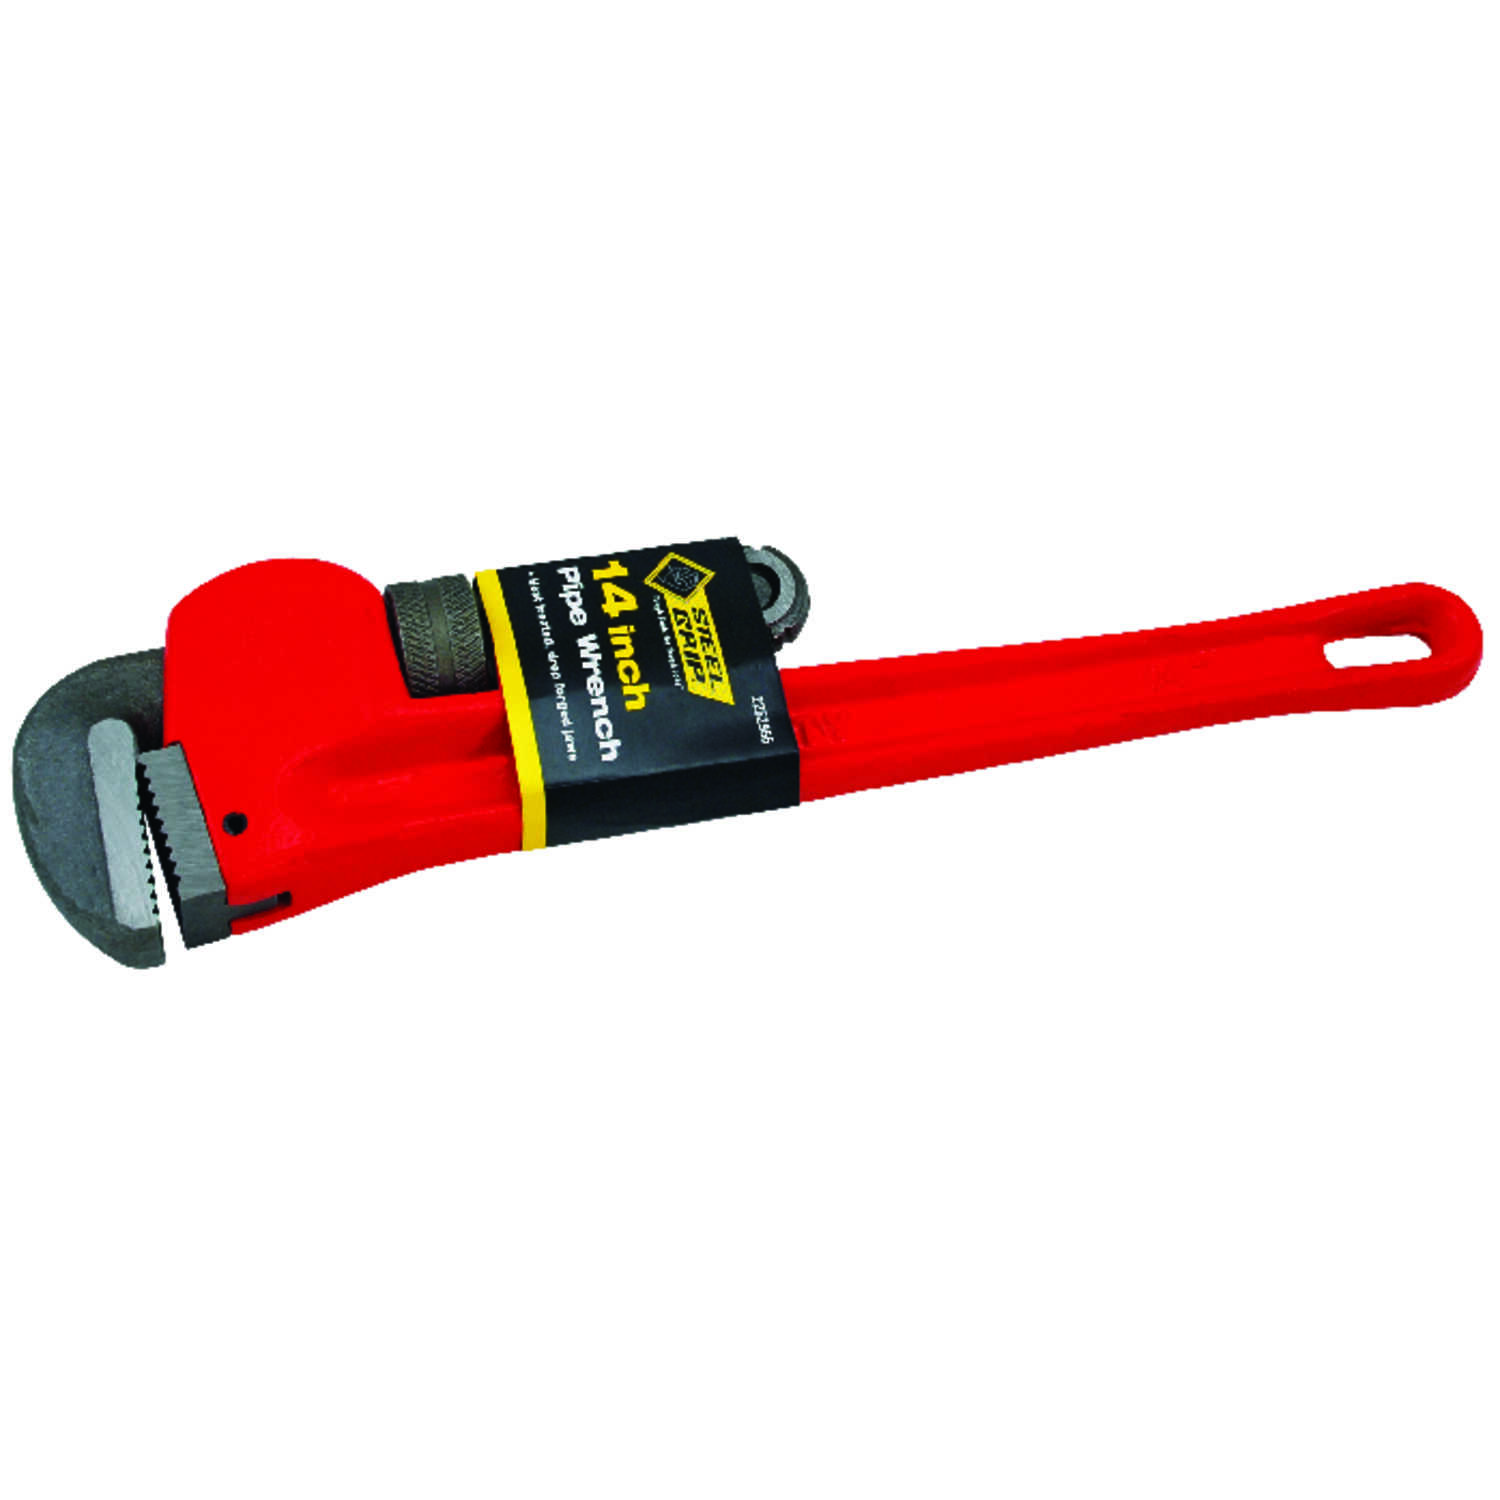 Steel Grip  Pipe Wrench  14 in. 1 pc. Cast Iron